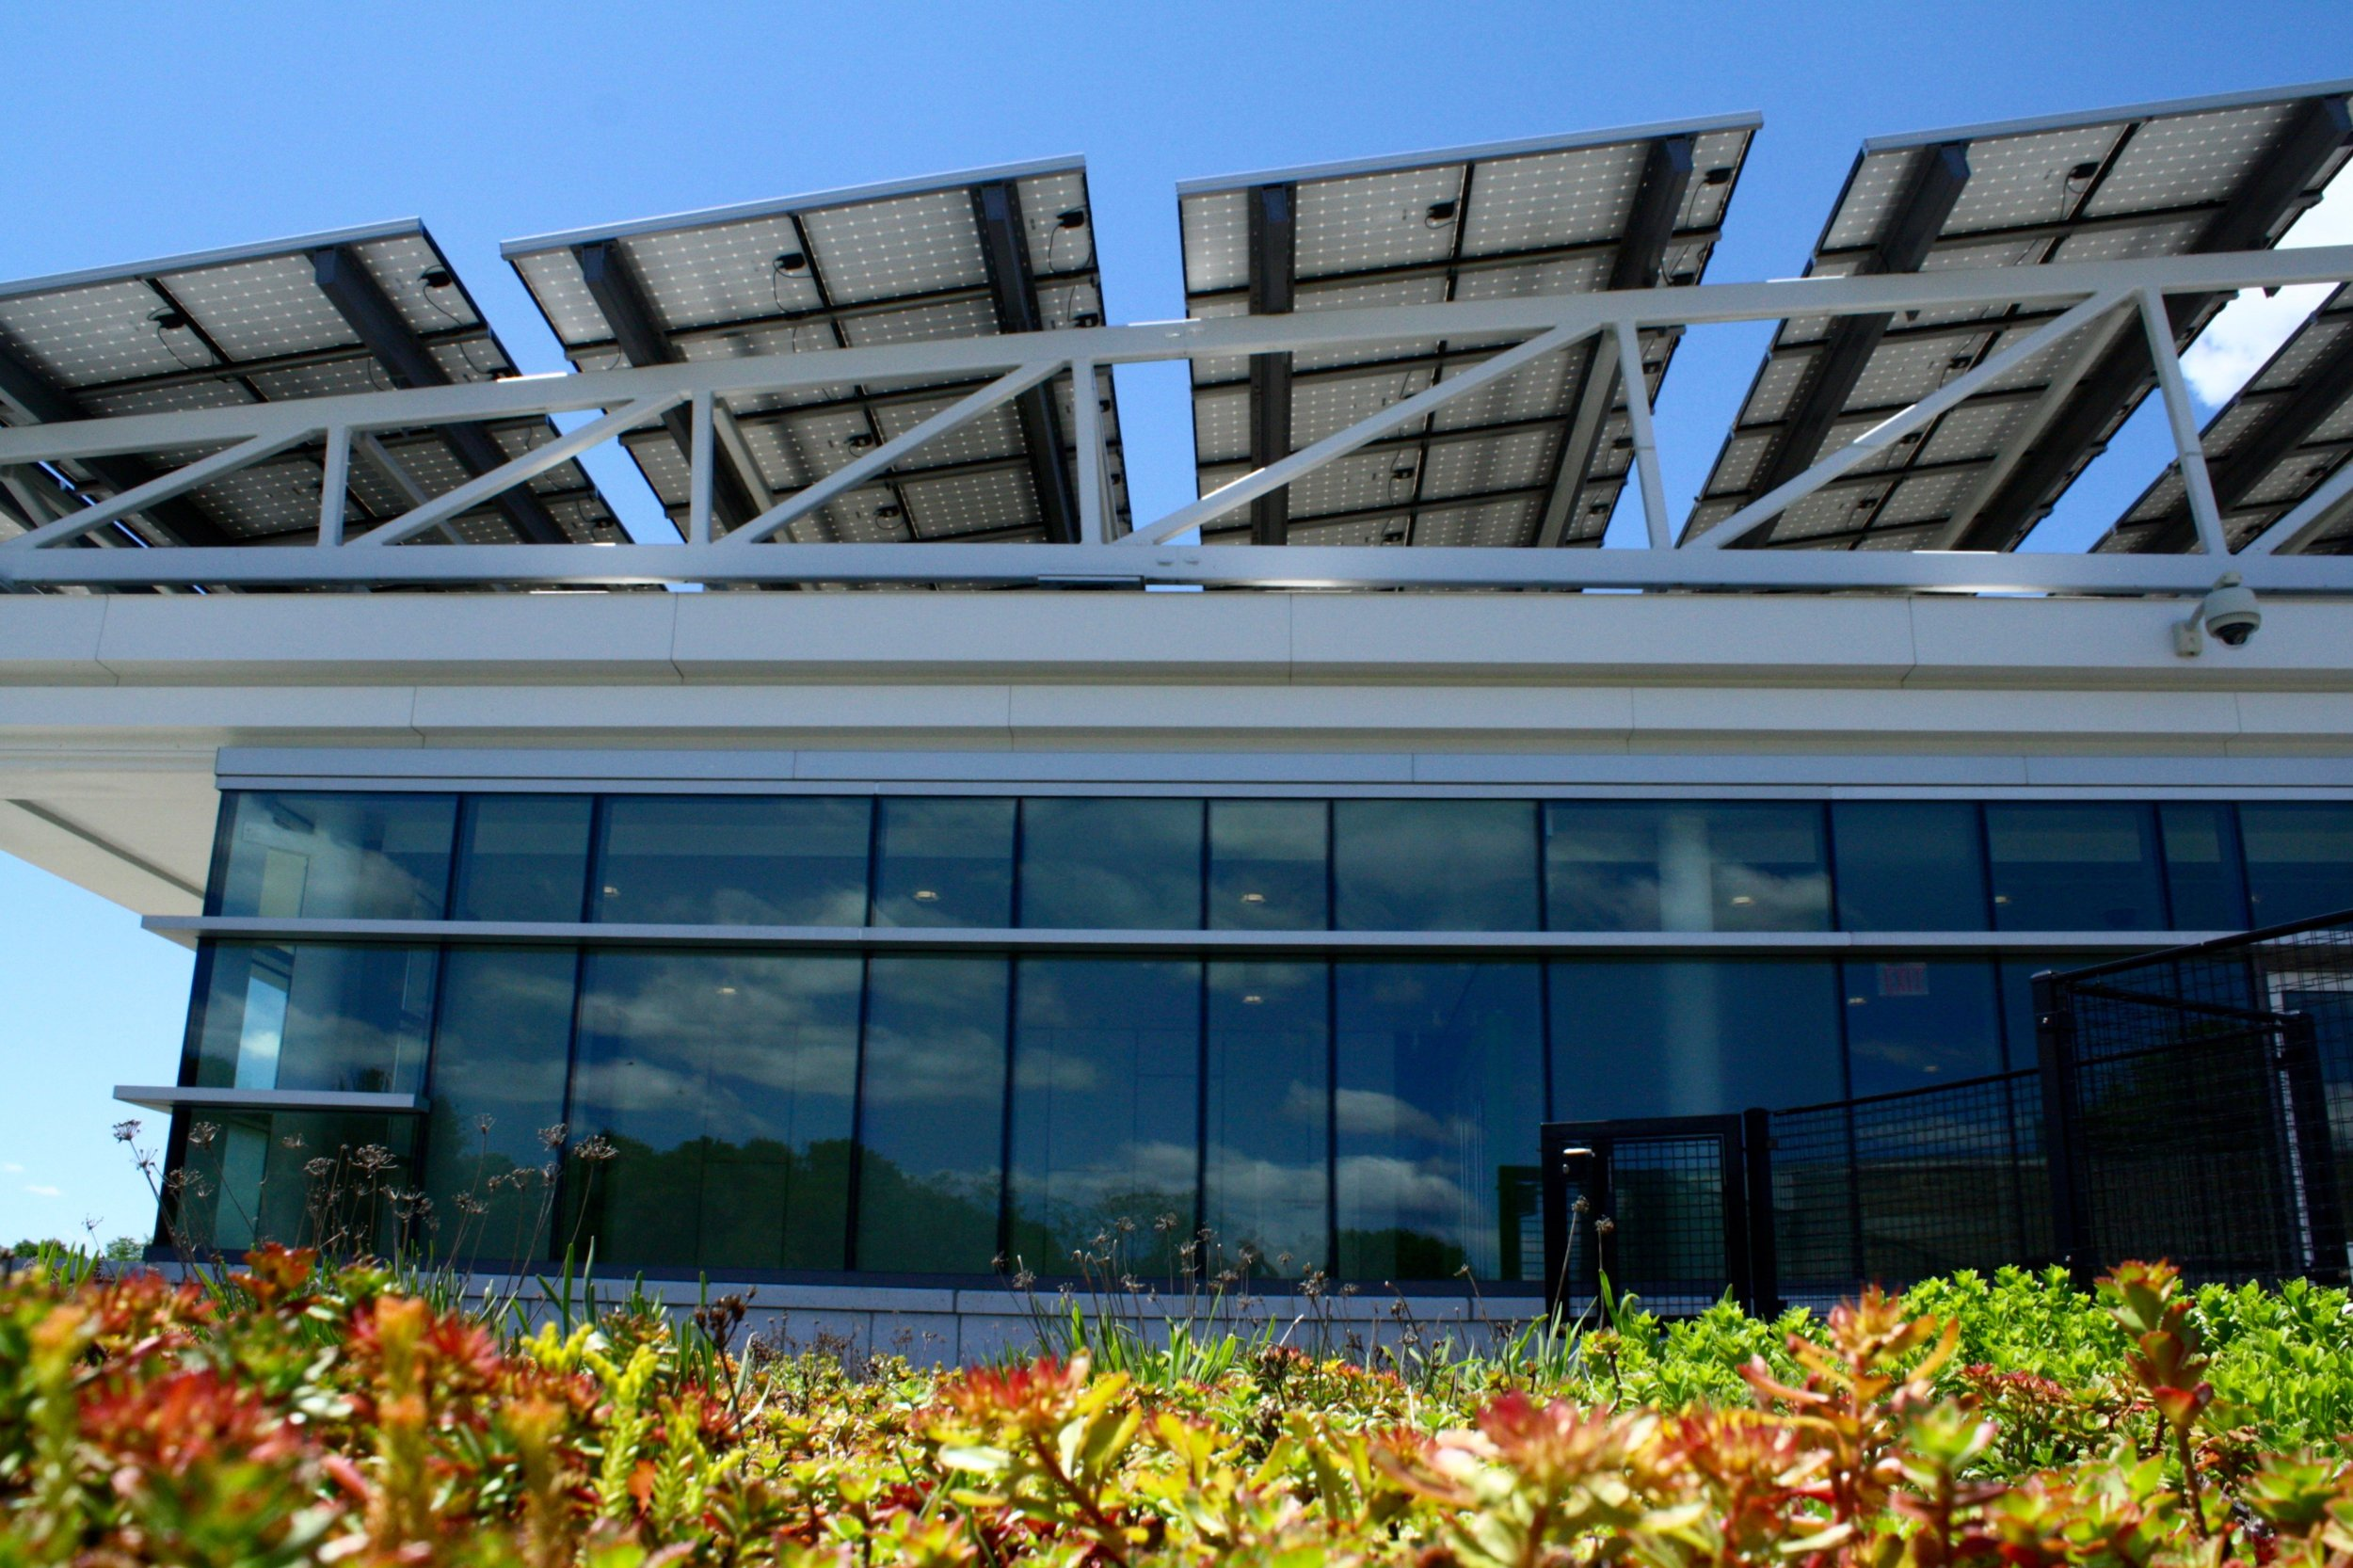 recover-green-roofs-north-shore-cc-2014-3.jpg